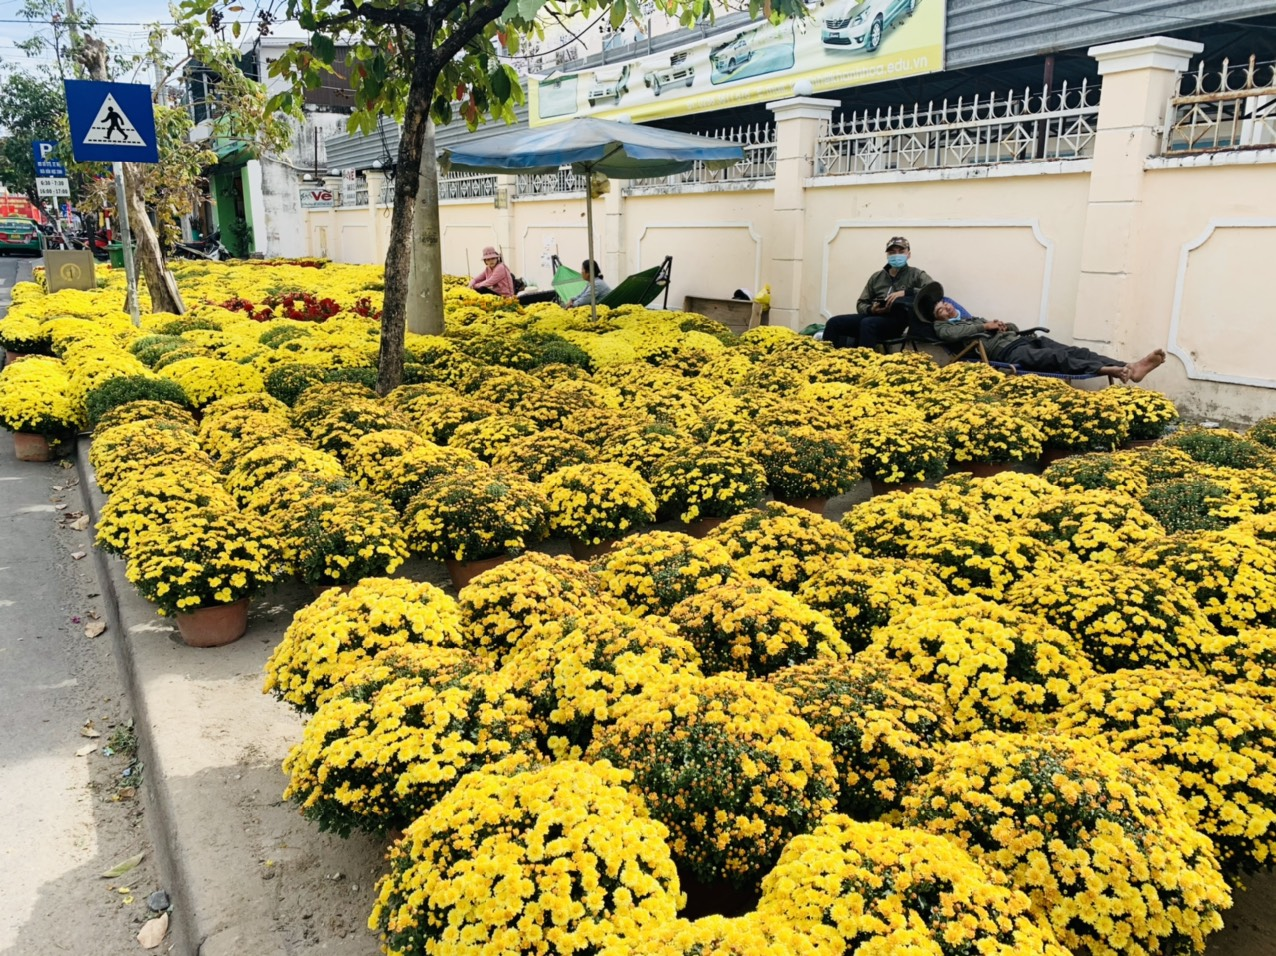 Chrysanthemums for sale on Le Thanh Phuong Street